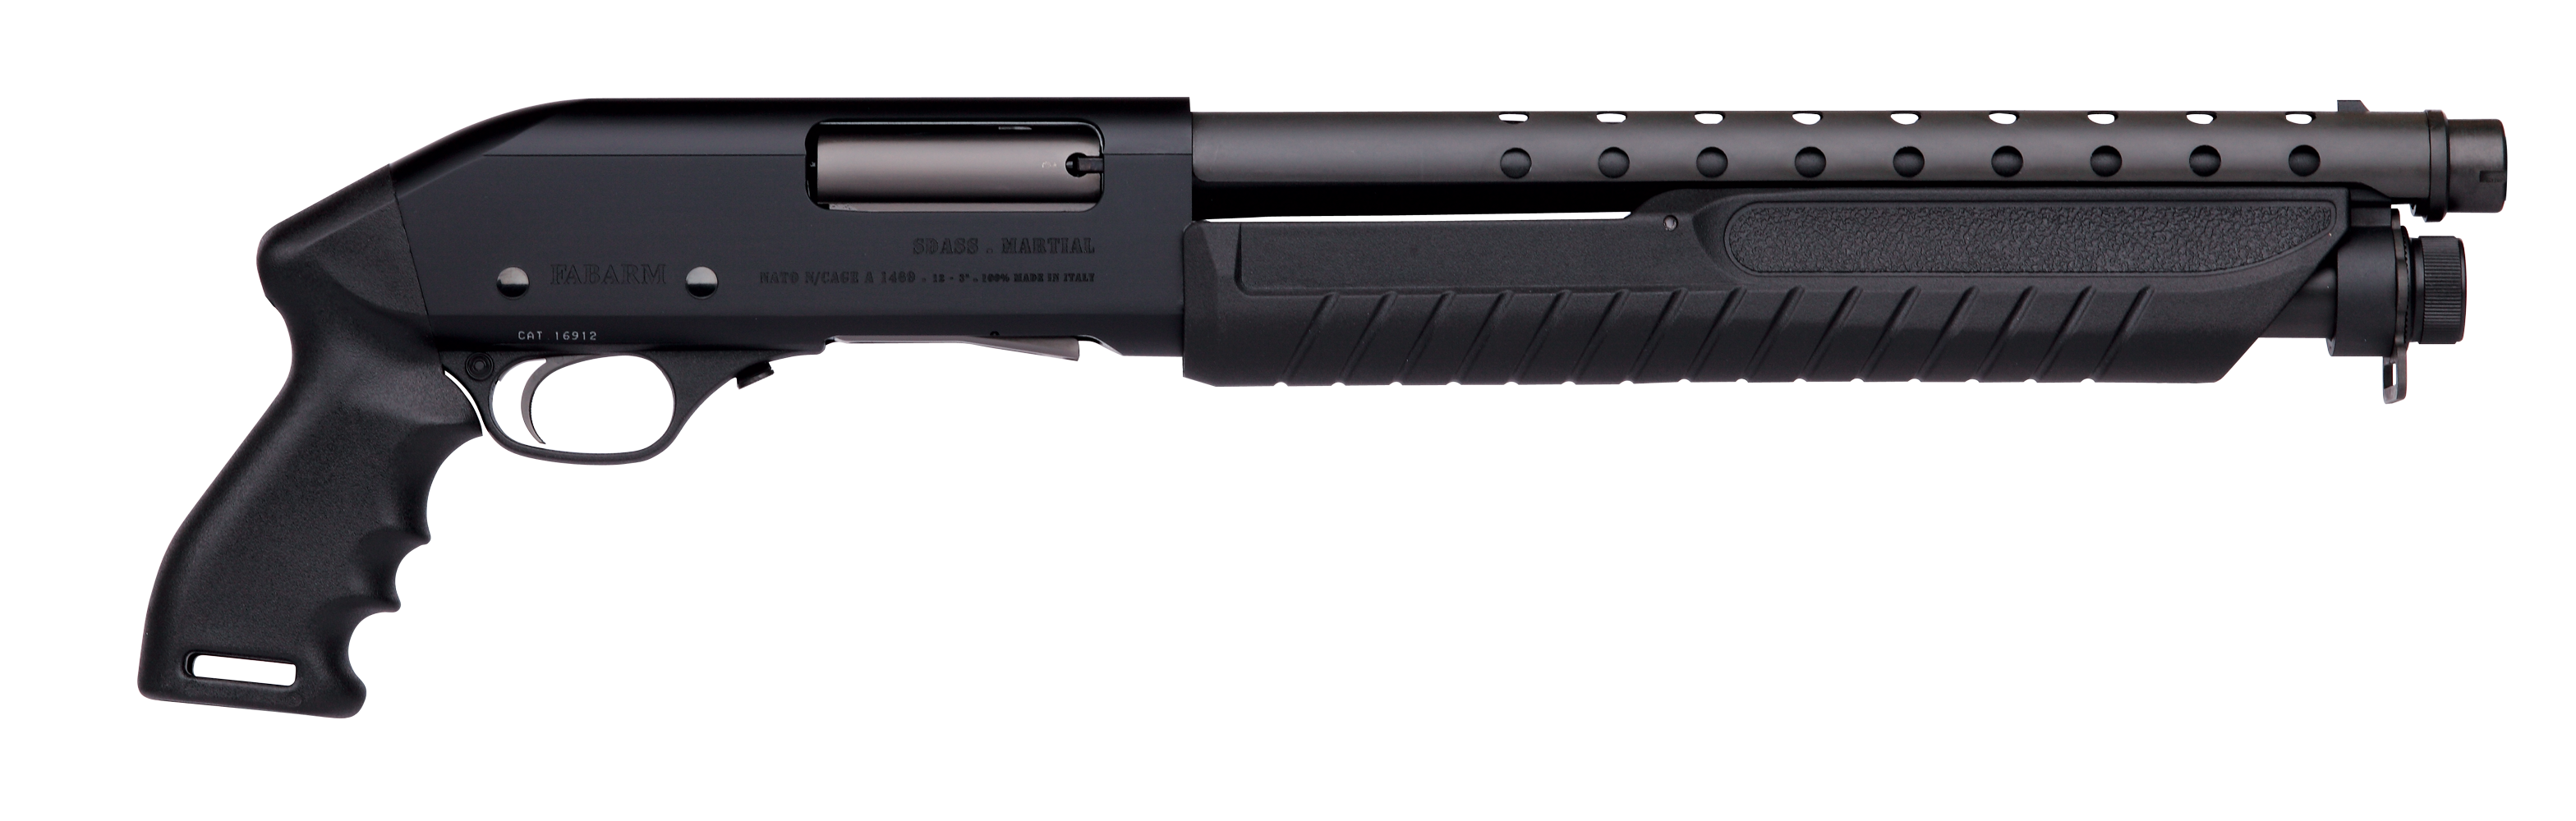 Fp6 shotgun png. Which of these two